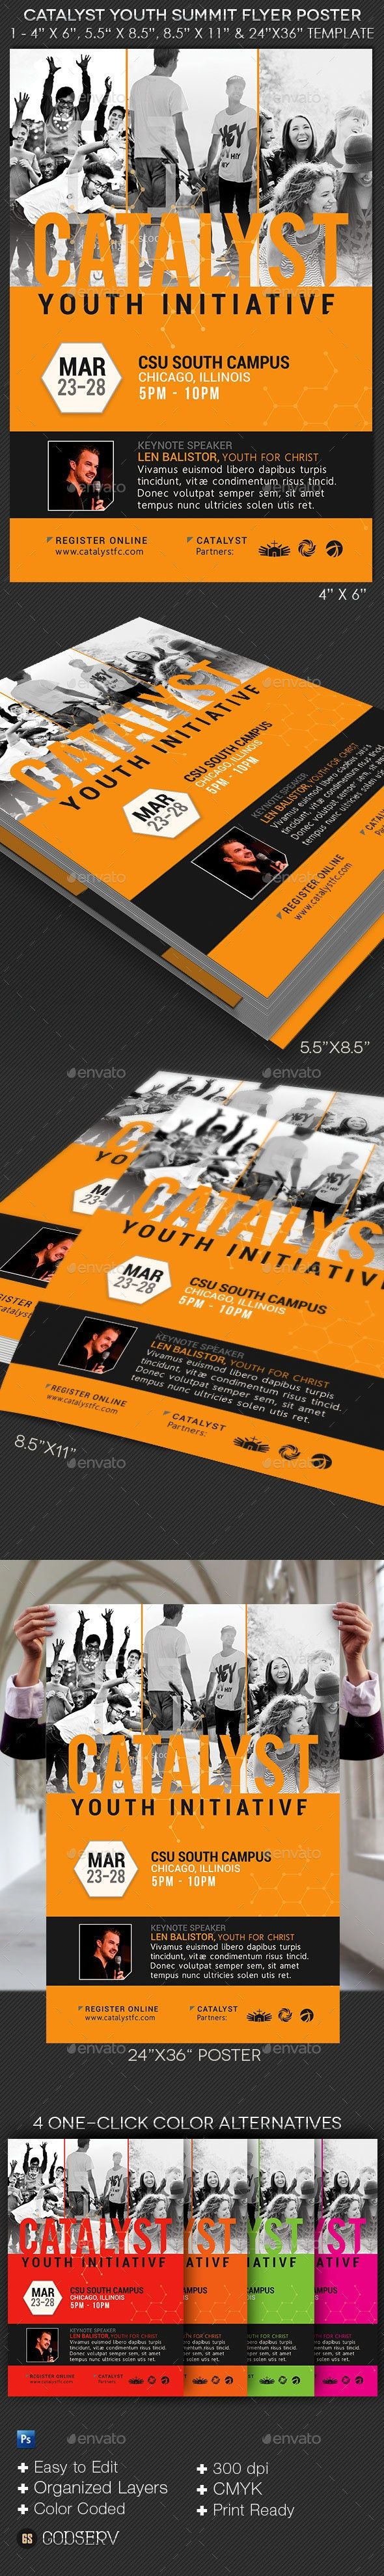 Catalyst Youth Summit Flyer Poster Template Ad Summit